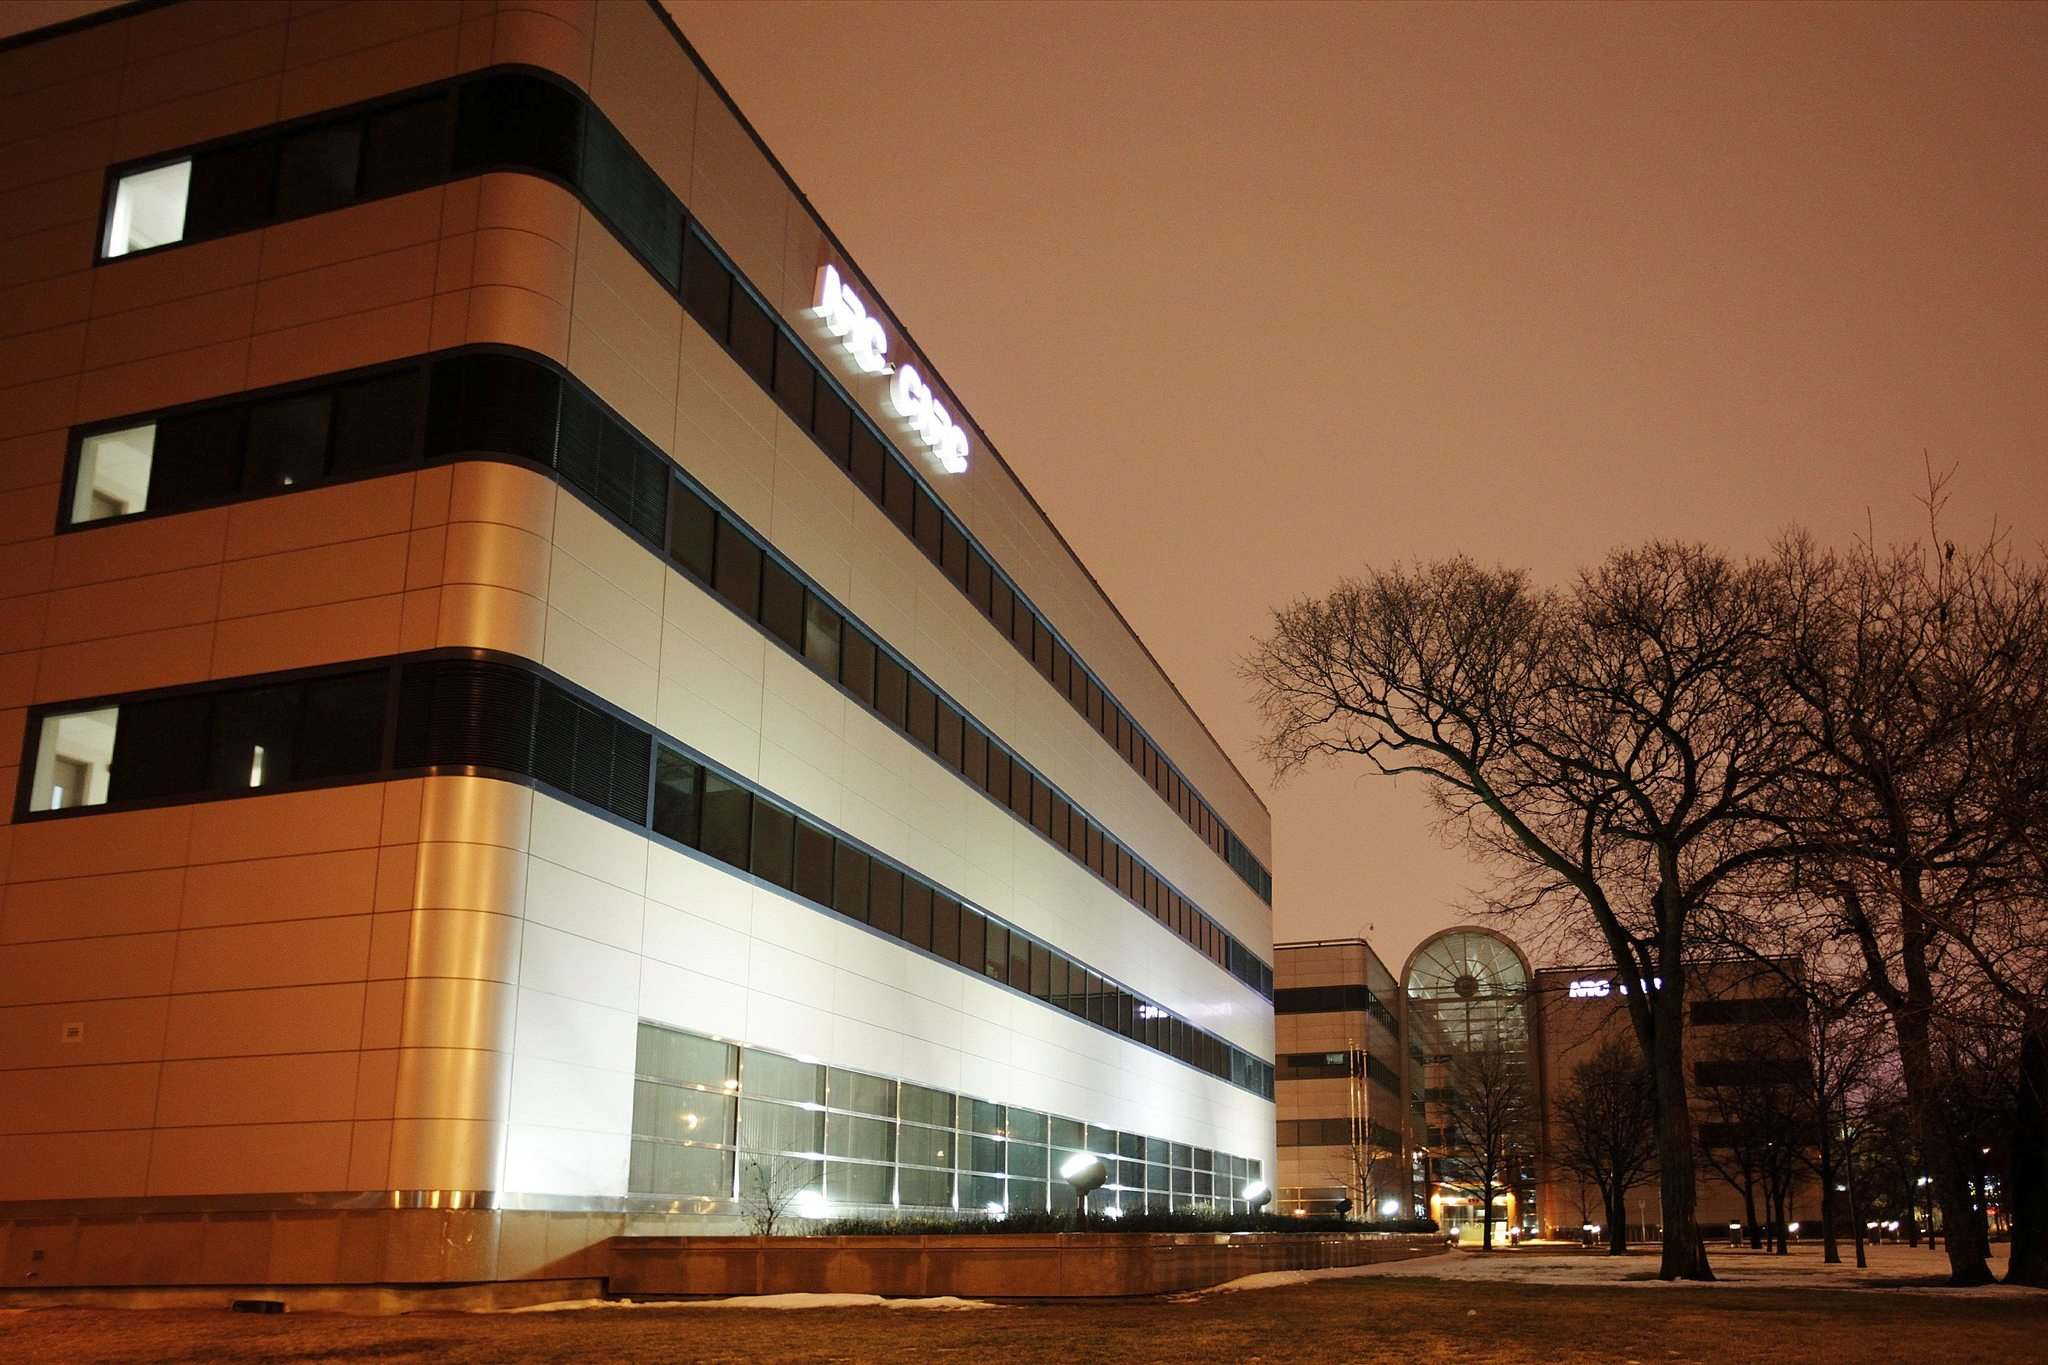 John Woods / Winnipeg Free Press Files</p><p>The former National Research Council building on Ellice Avenue was long considered underutilized before its closure was announced in 2012. The property is currently up for sale.</p>